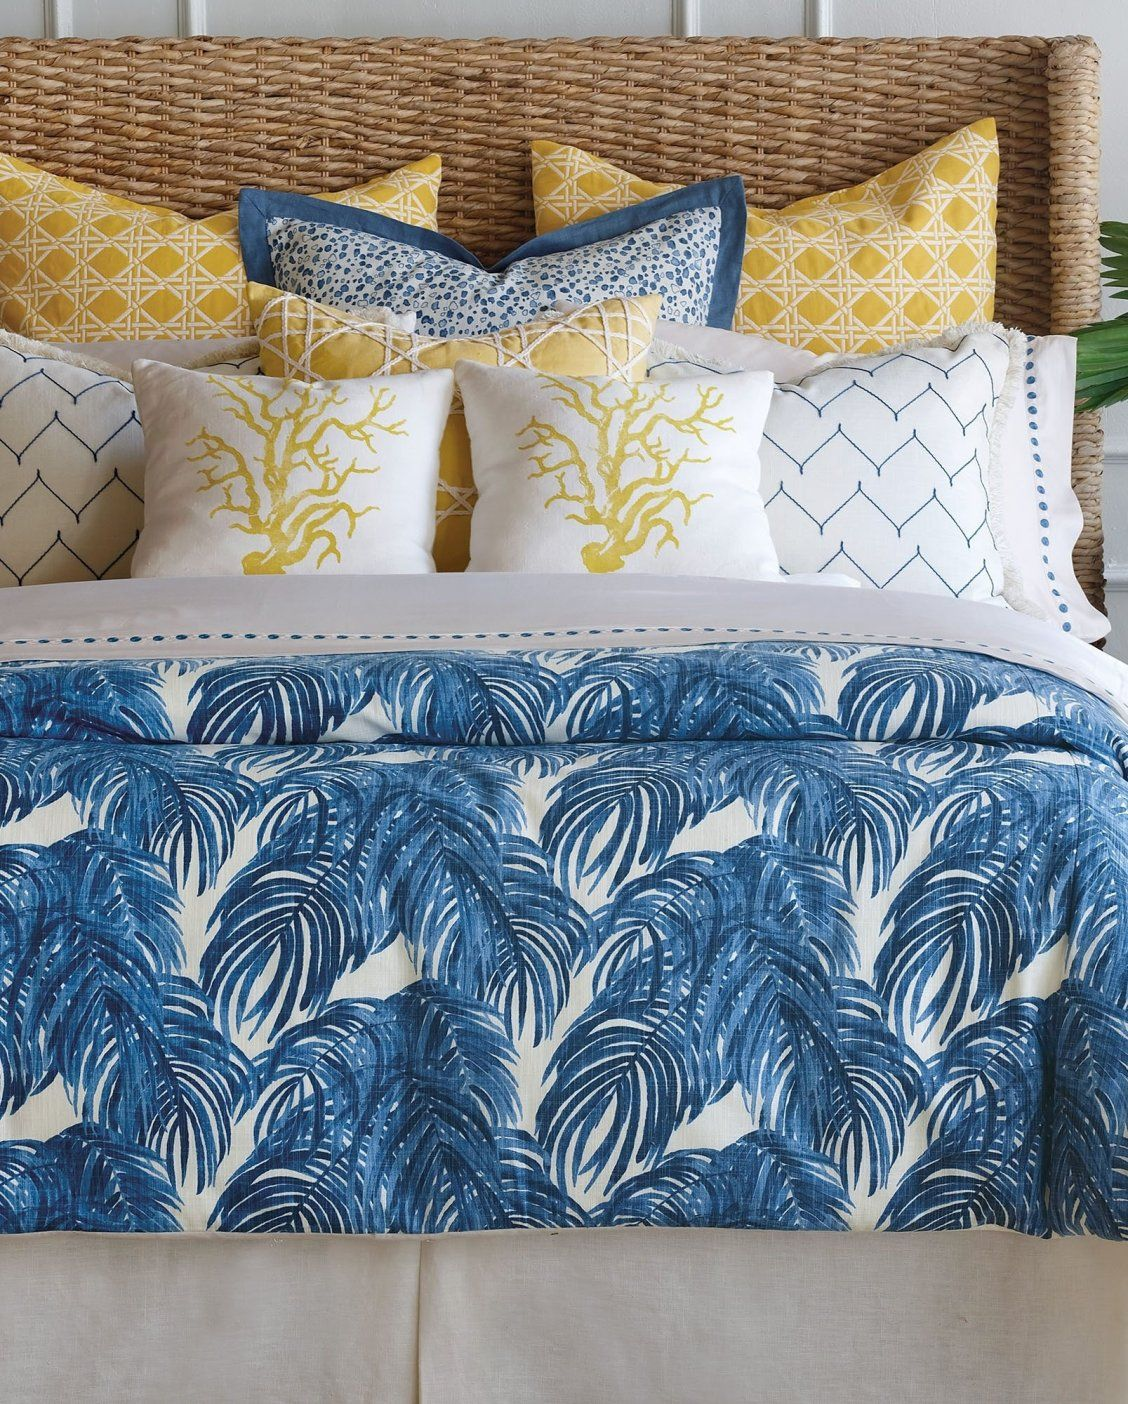 Invigorate Your Bed Top With A Vibrant Yet Relaxing Ensemble The